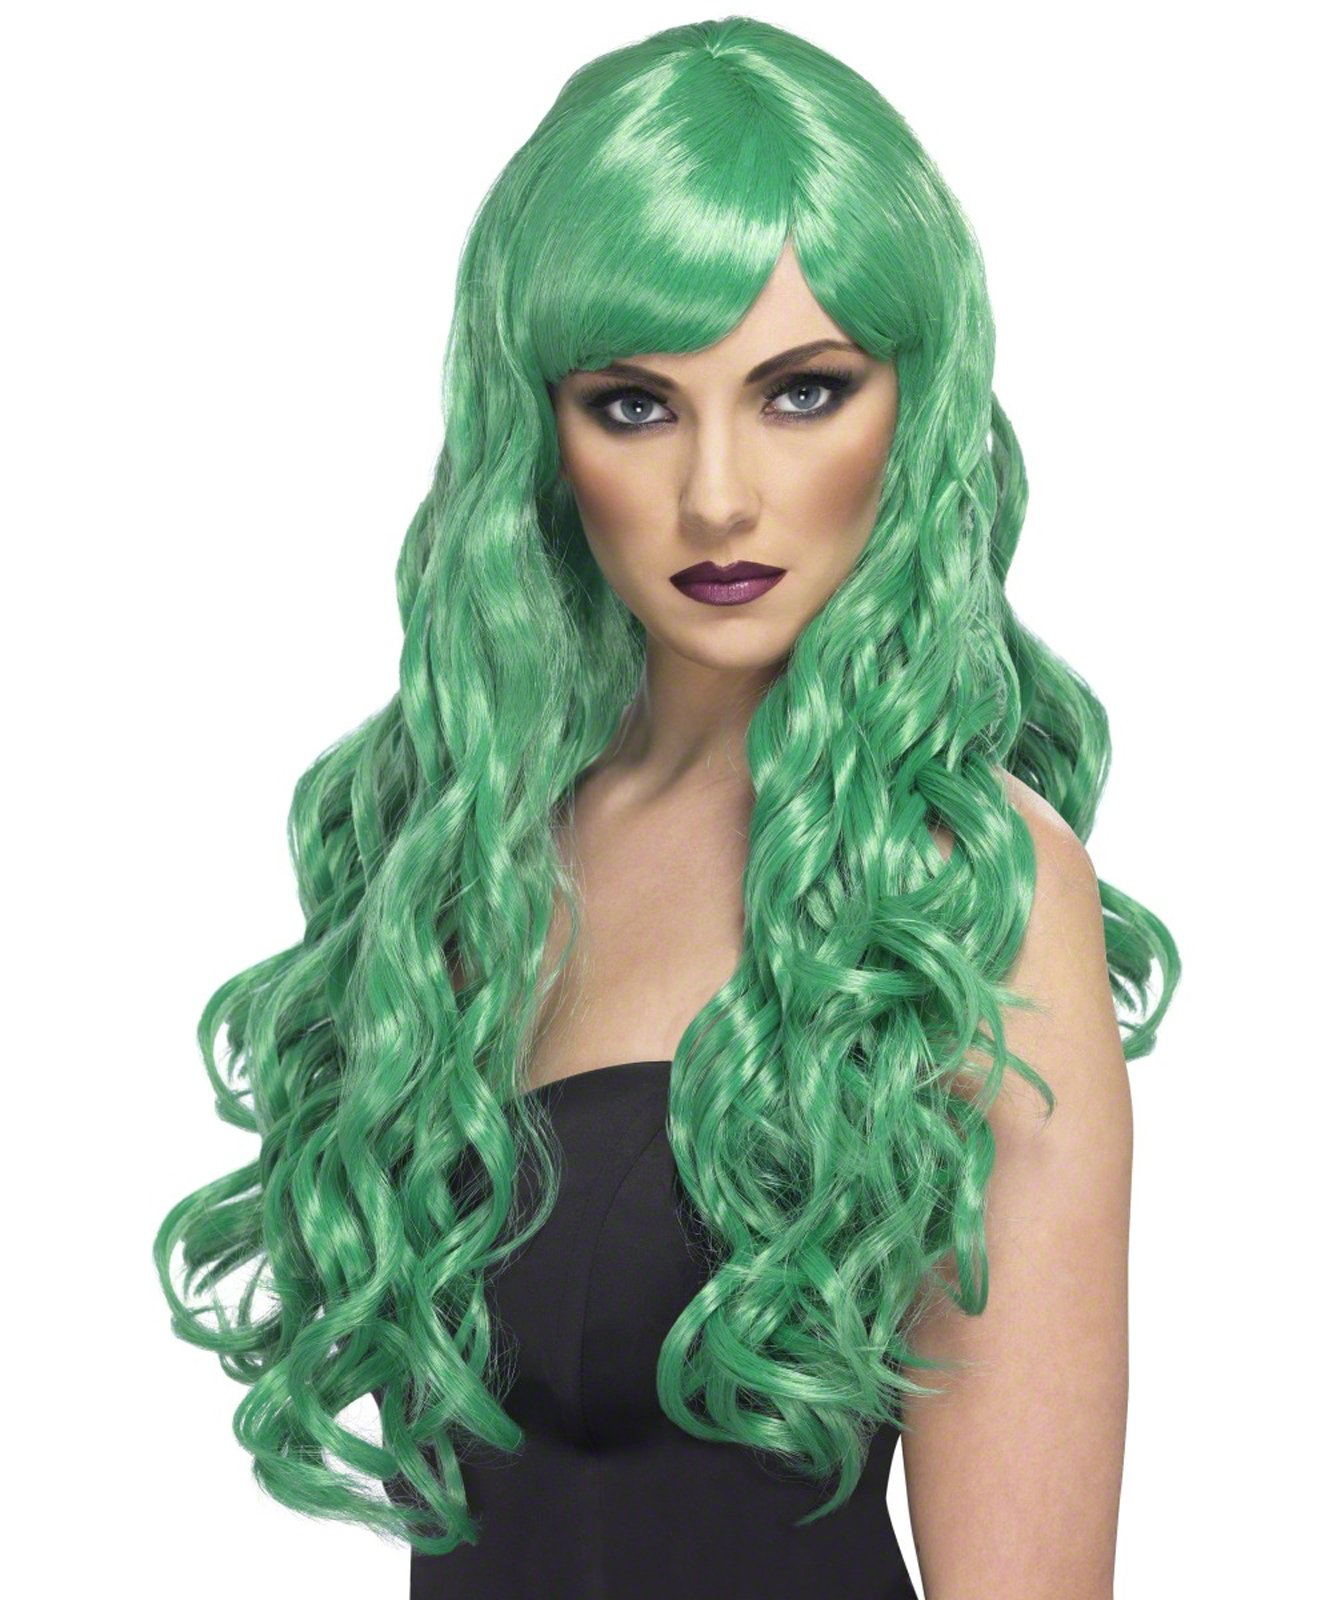 Desire (Green) Adult Wig - Click Image to Close